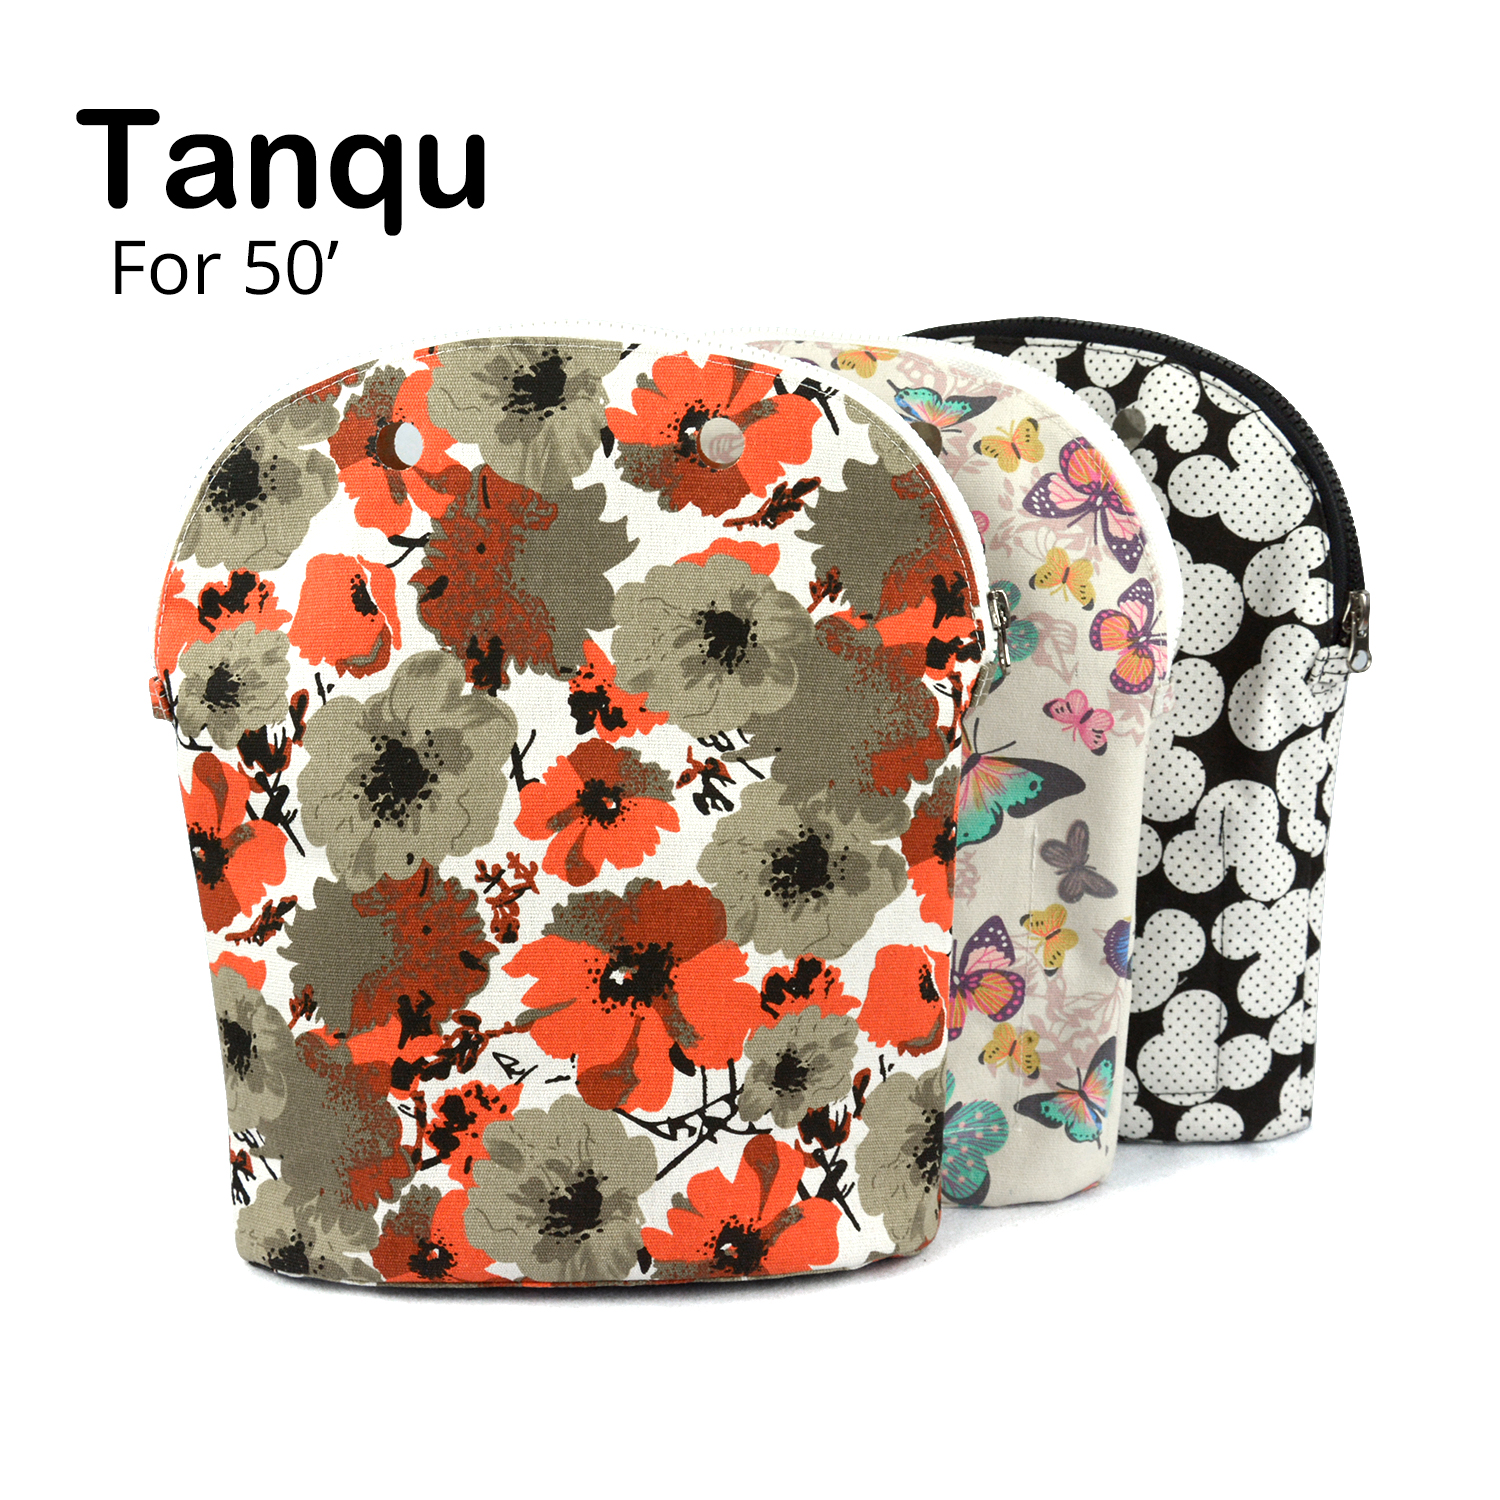 TANQU Colorful Inner Lining Zipper Pocket For Obag 50 Super Advanced Insert With Inner Waterproof Coating For O Bag 50